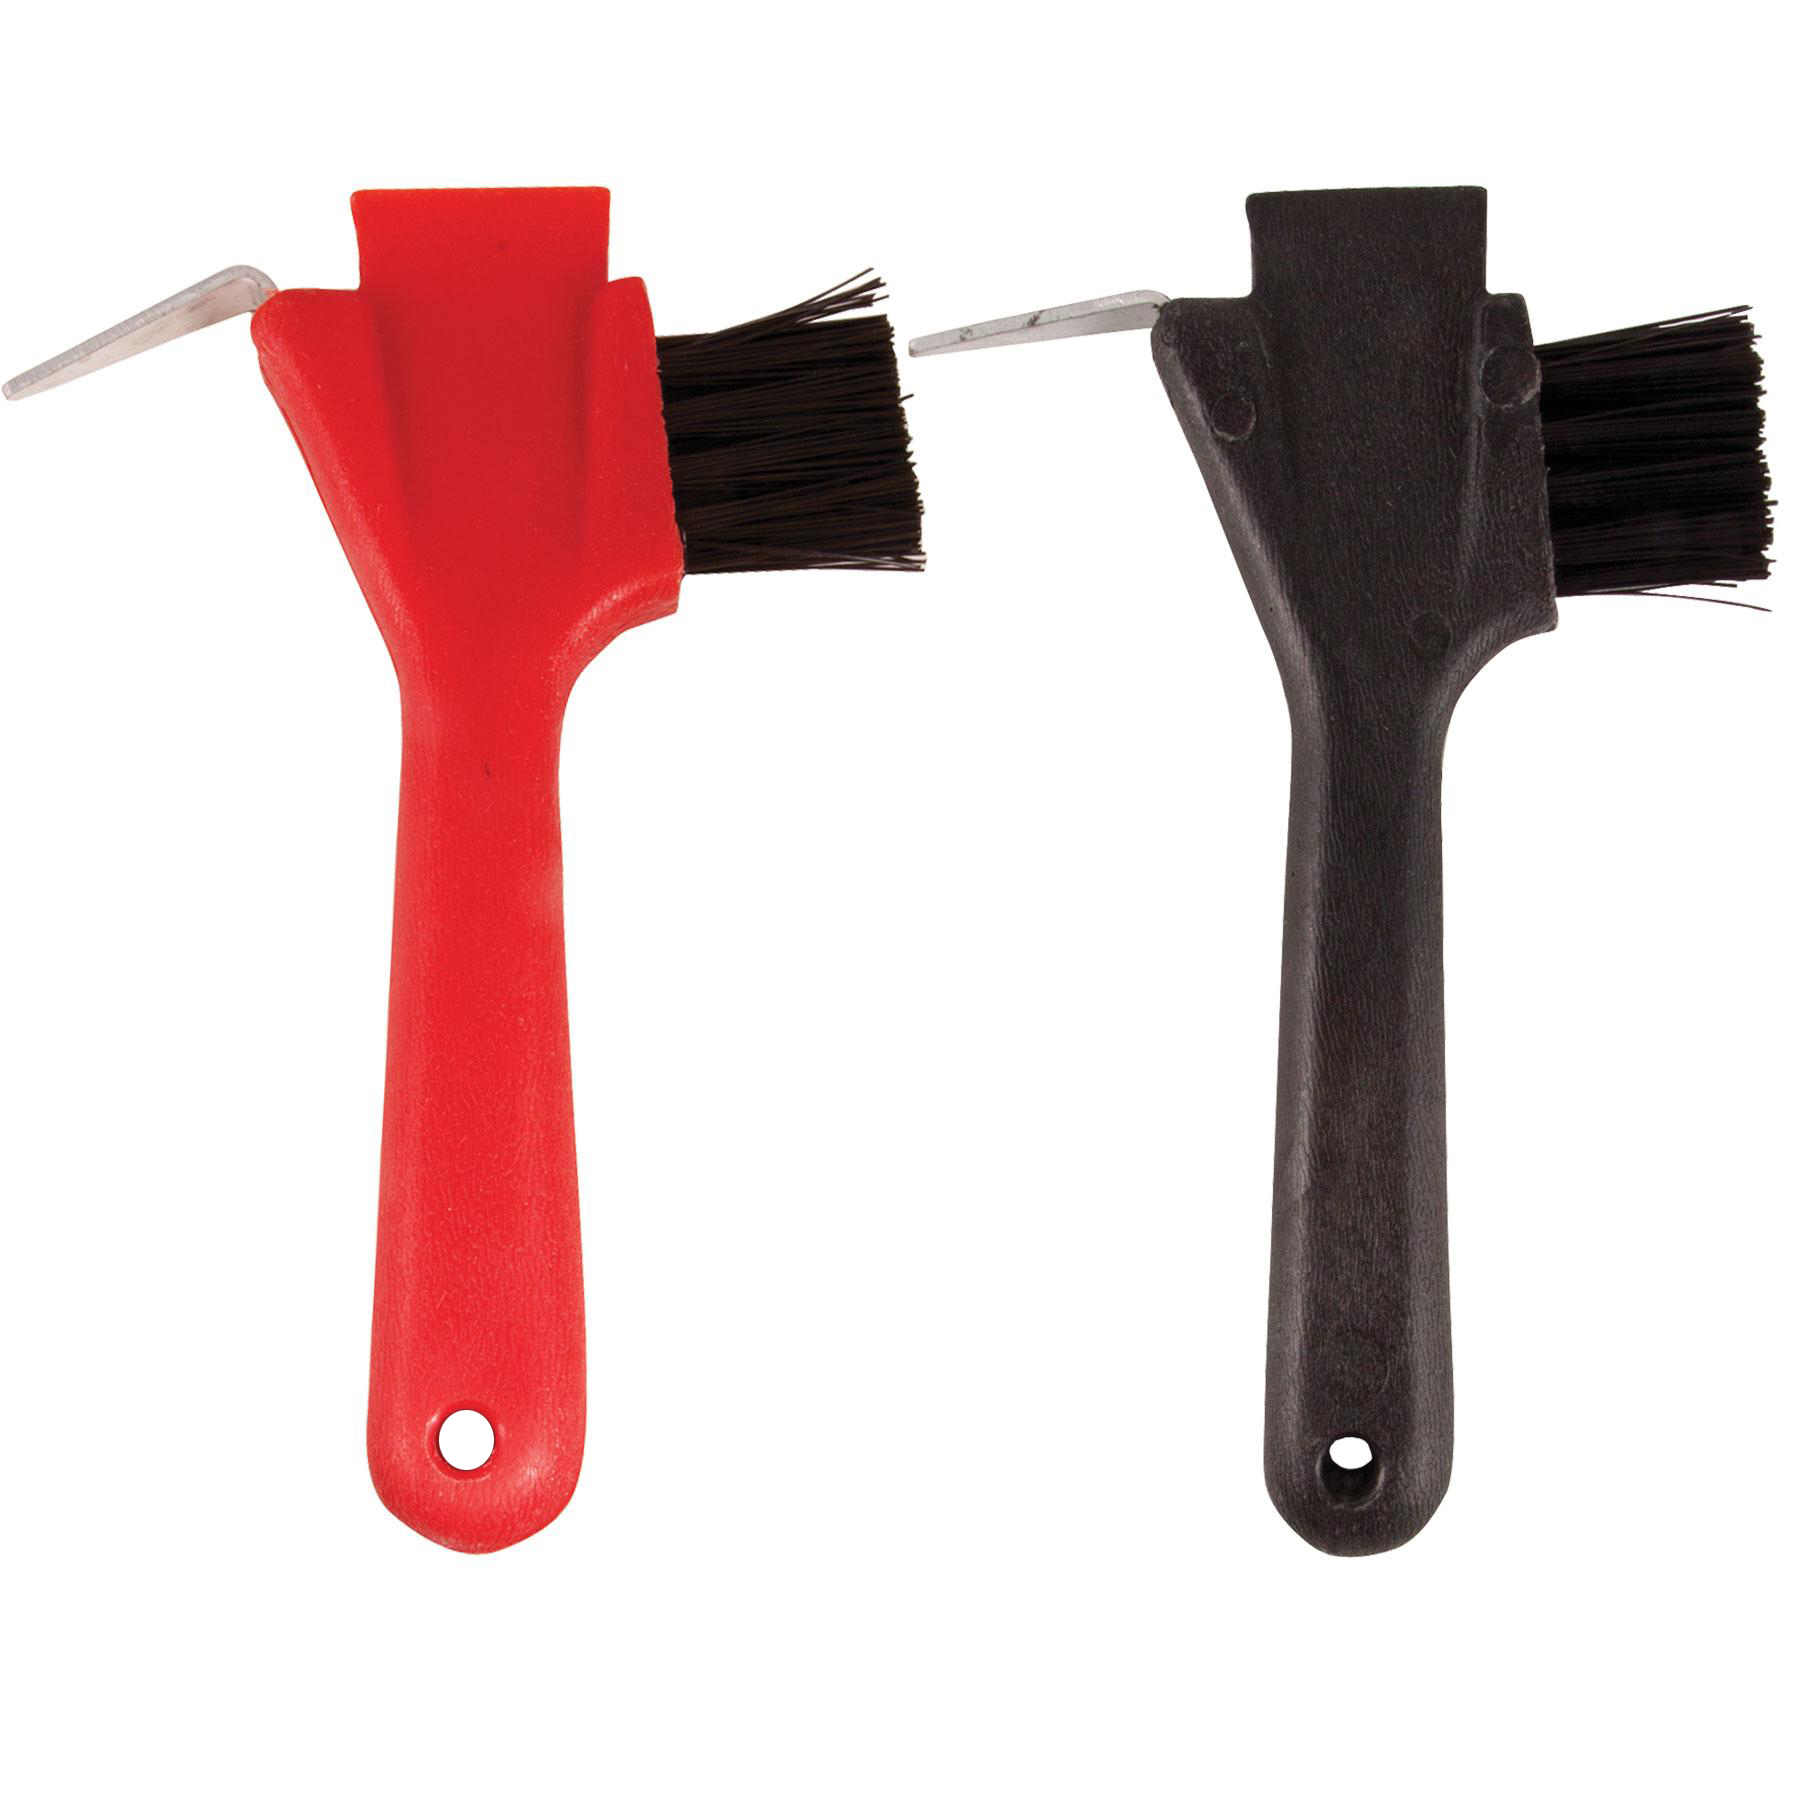 ai34616 Schneider's Hoof Pick with Brush & Scraper